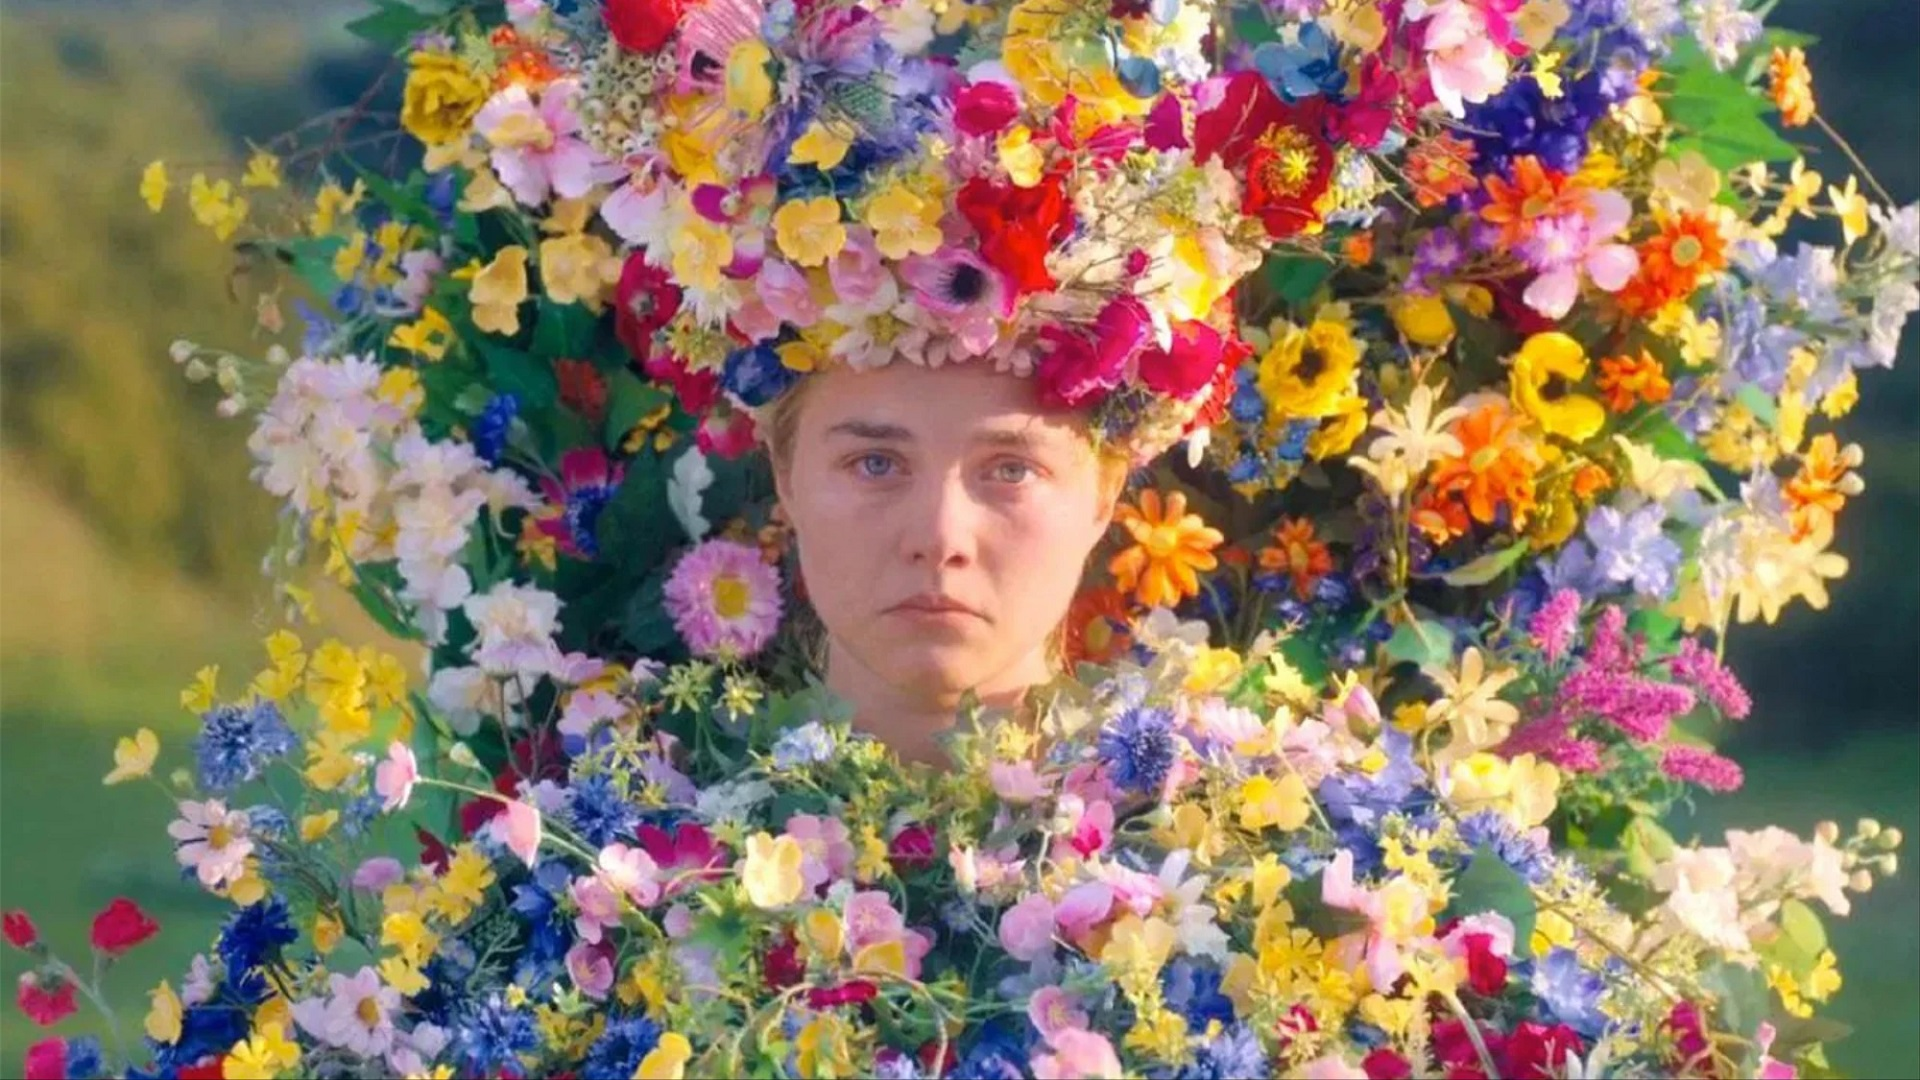 Photo of Imagining a Pop Star Bidding War For Midsommar's Dress Will Get Me Through Today